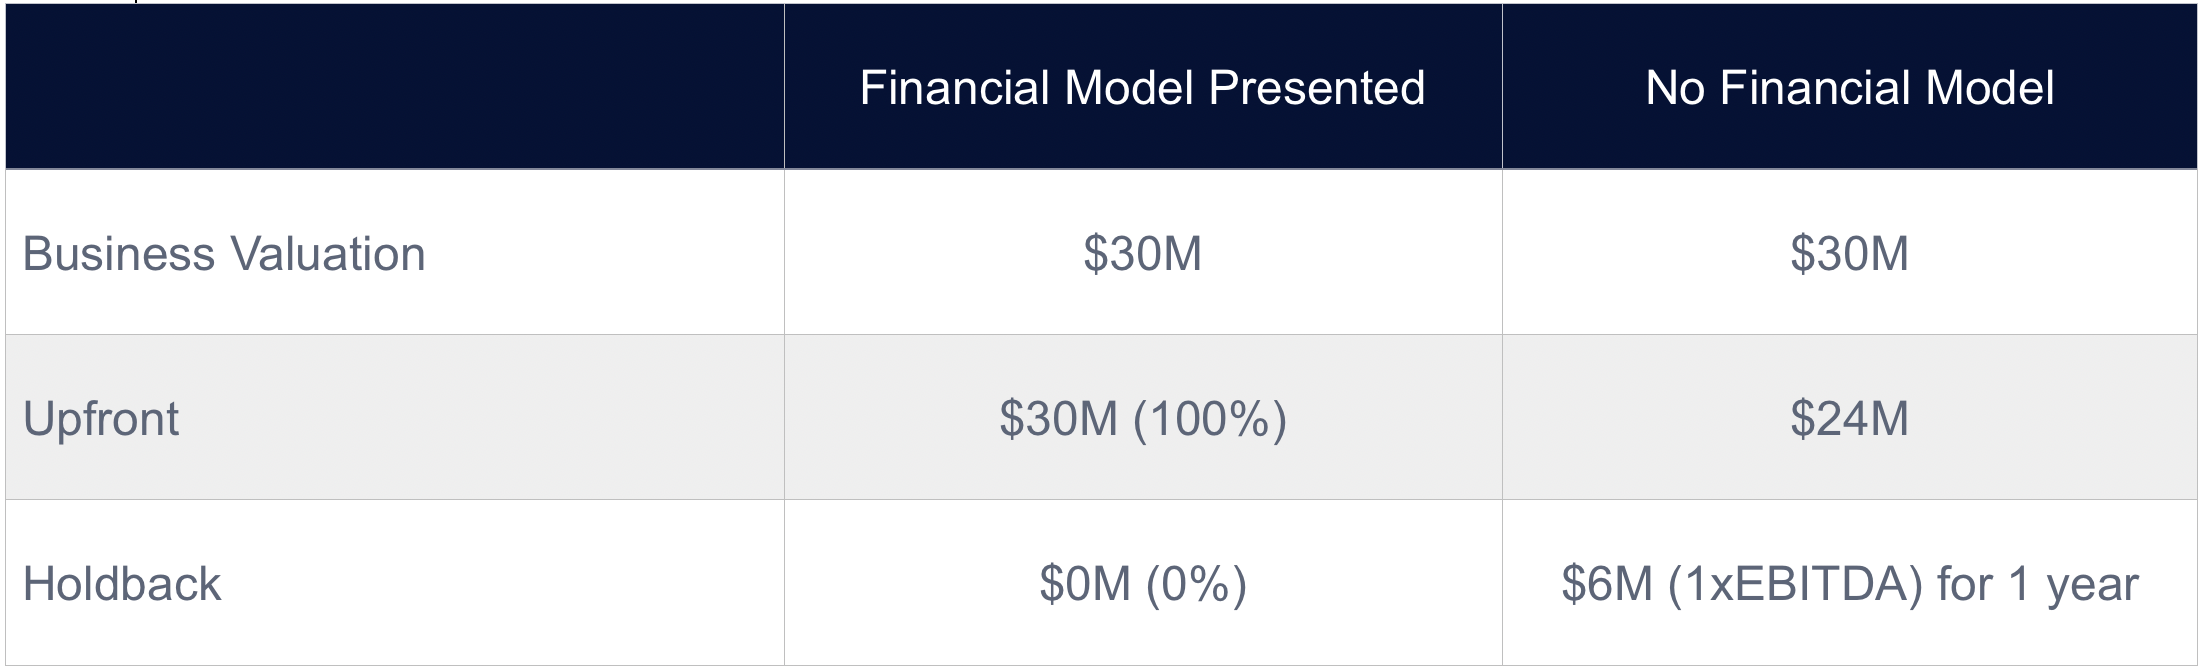 chart showing business value with financial model and no financial model